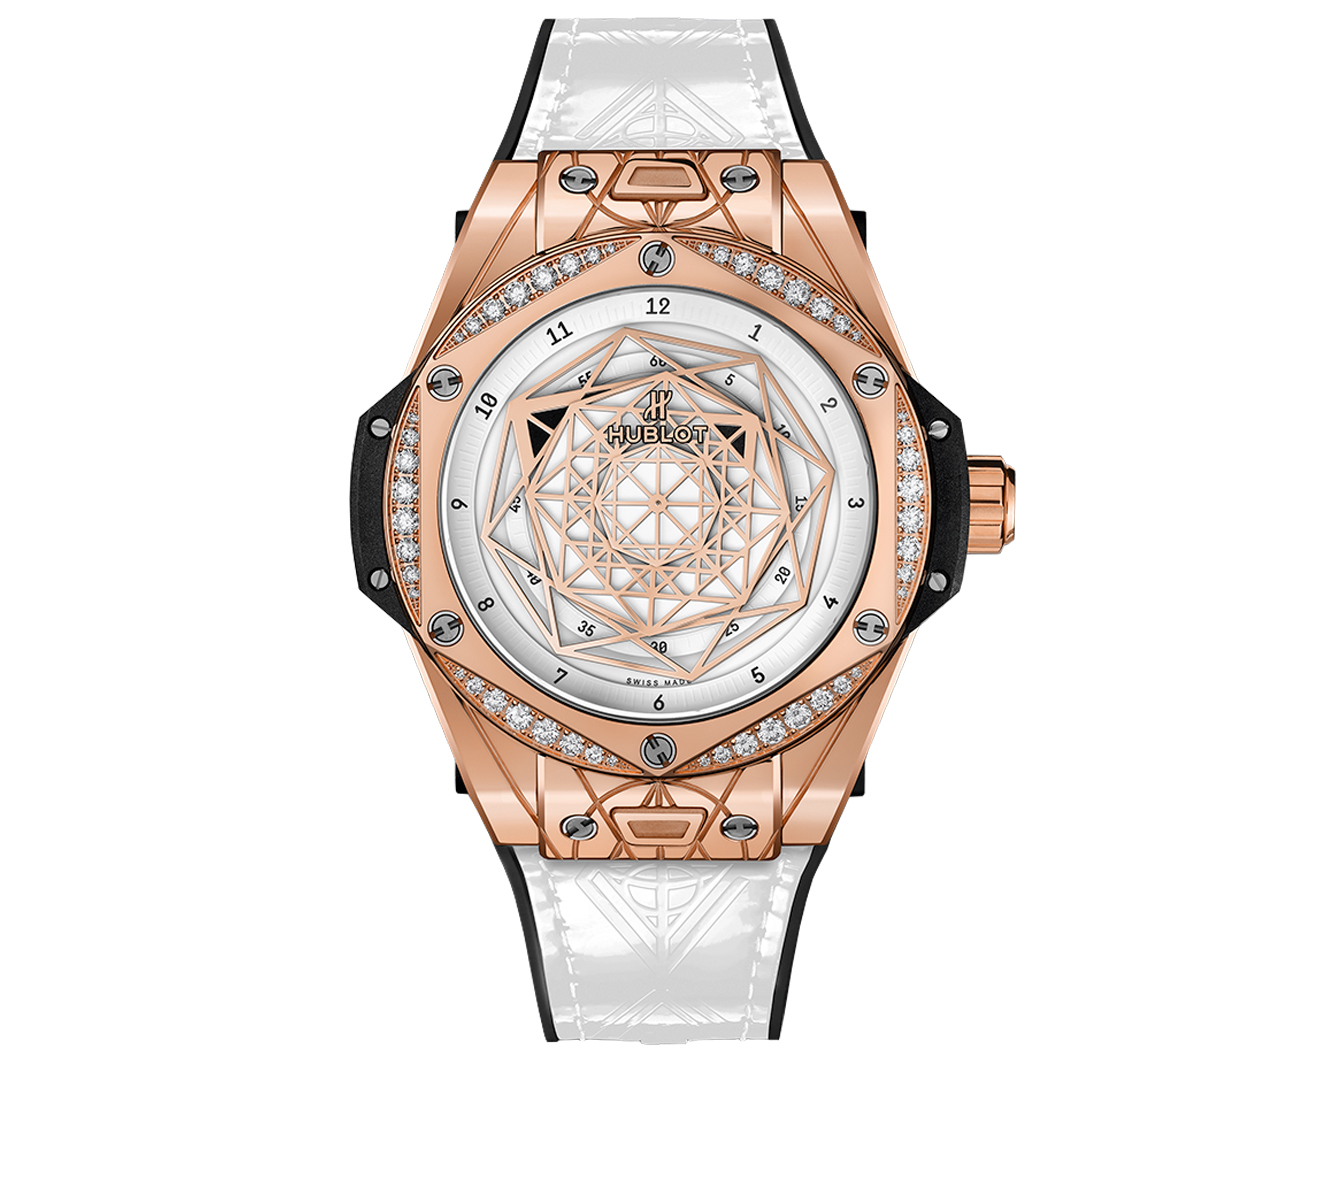 Часы Sang Bleu King Gold White Diamonds HUBLOT Big Bang 465.OS.2028.VR.1204.MXM19 - фото 1 – Mercury